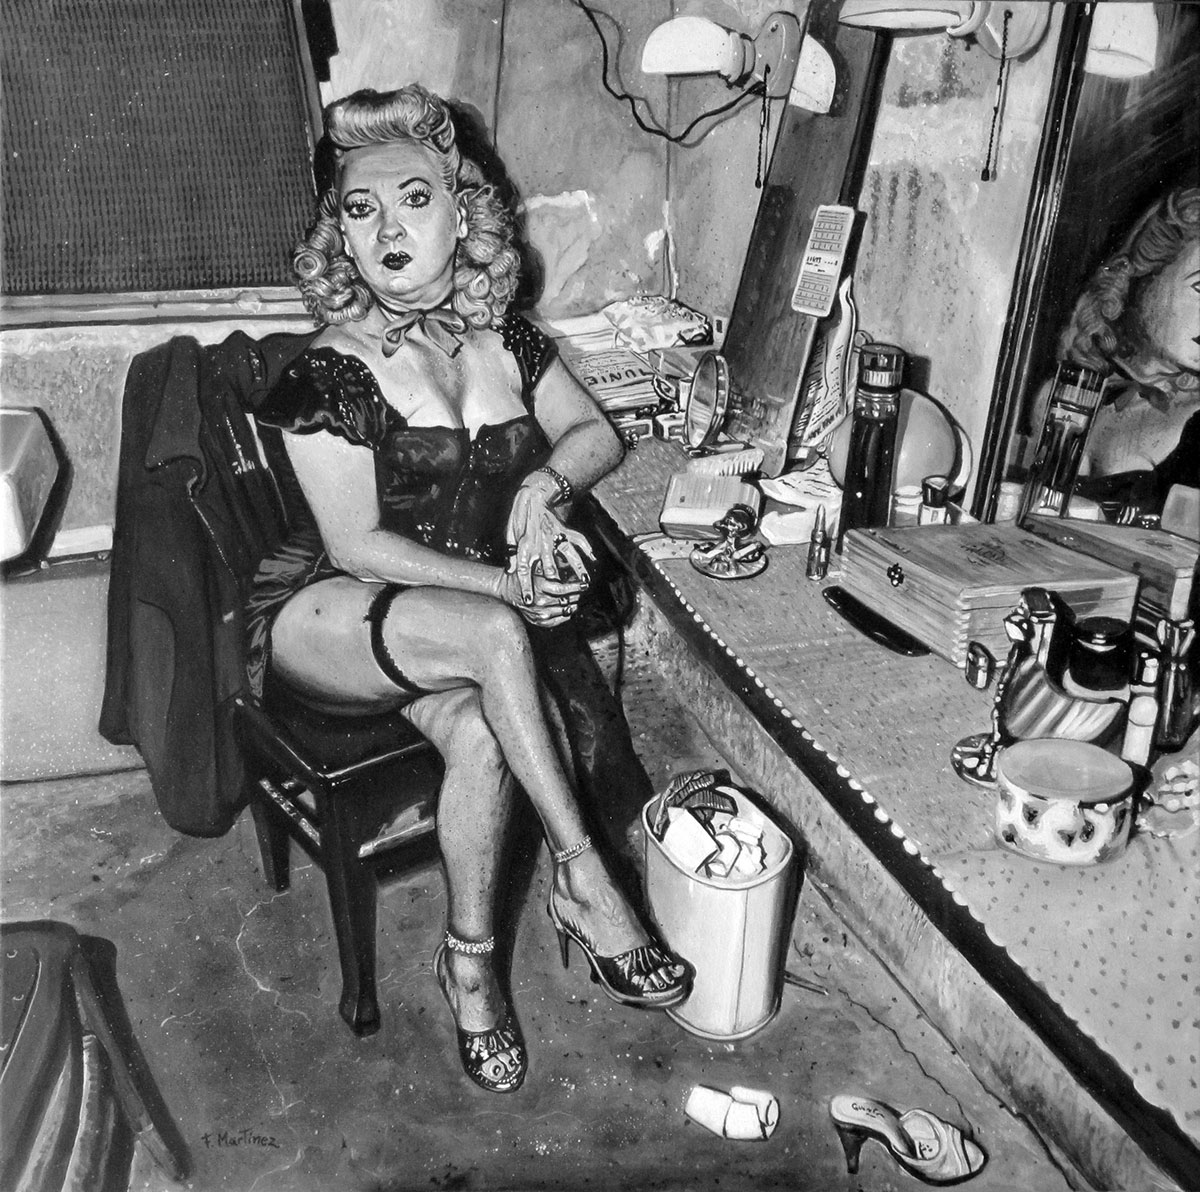 ©Fernando Martínez Campello - Burlesque Commedienne in her dressing room - enkil.org